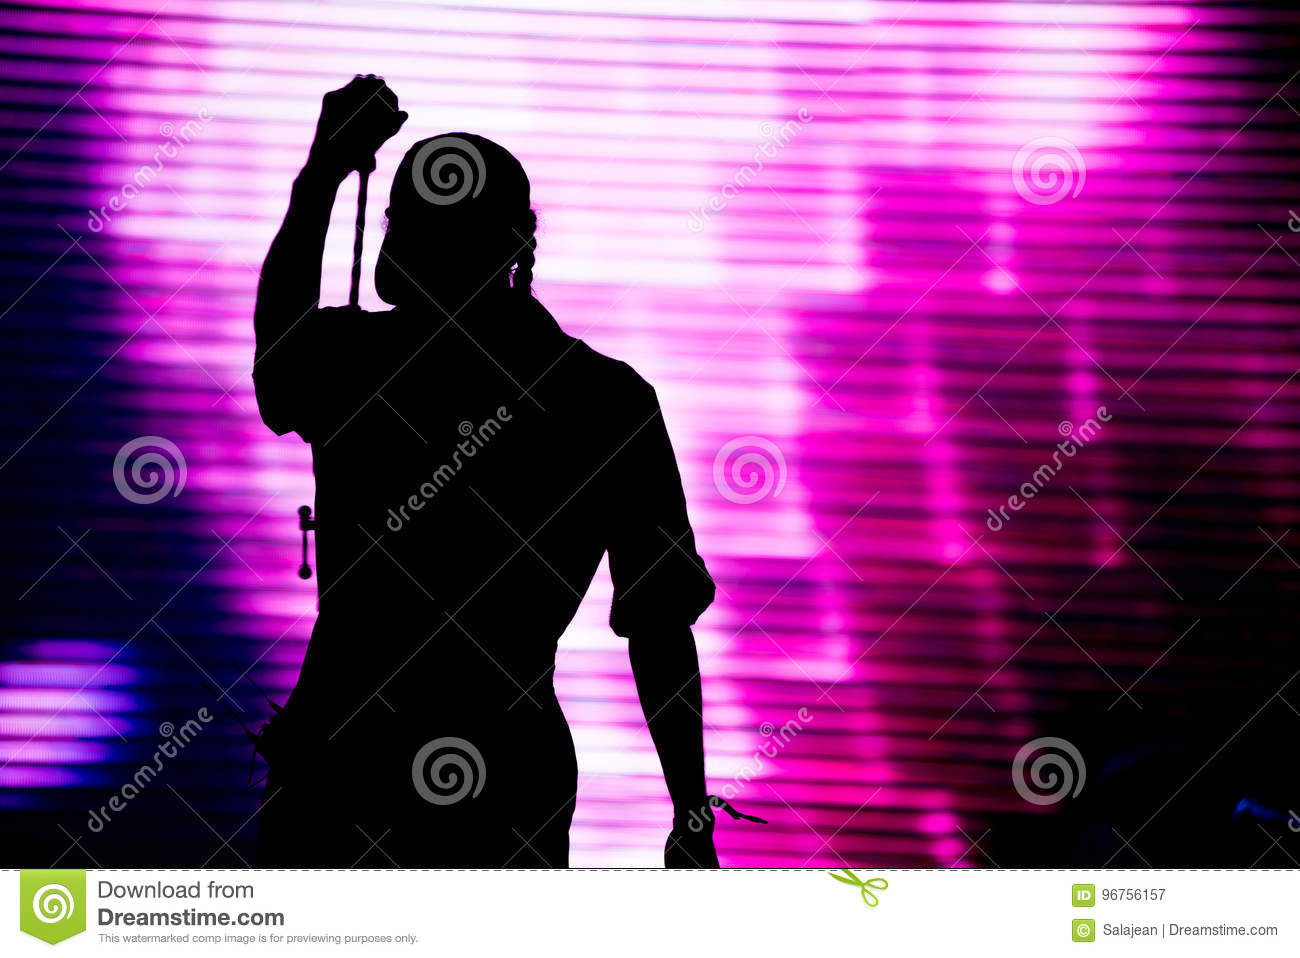 Silhouette of an artist singing live on the stage